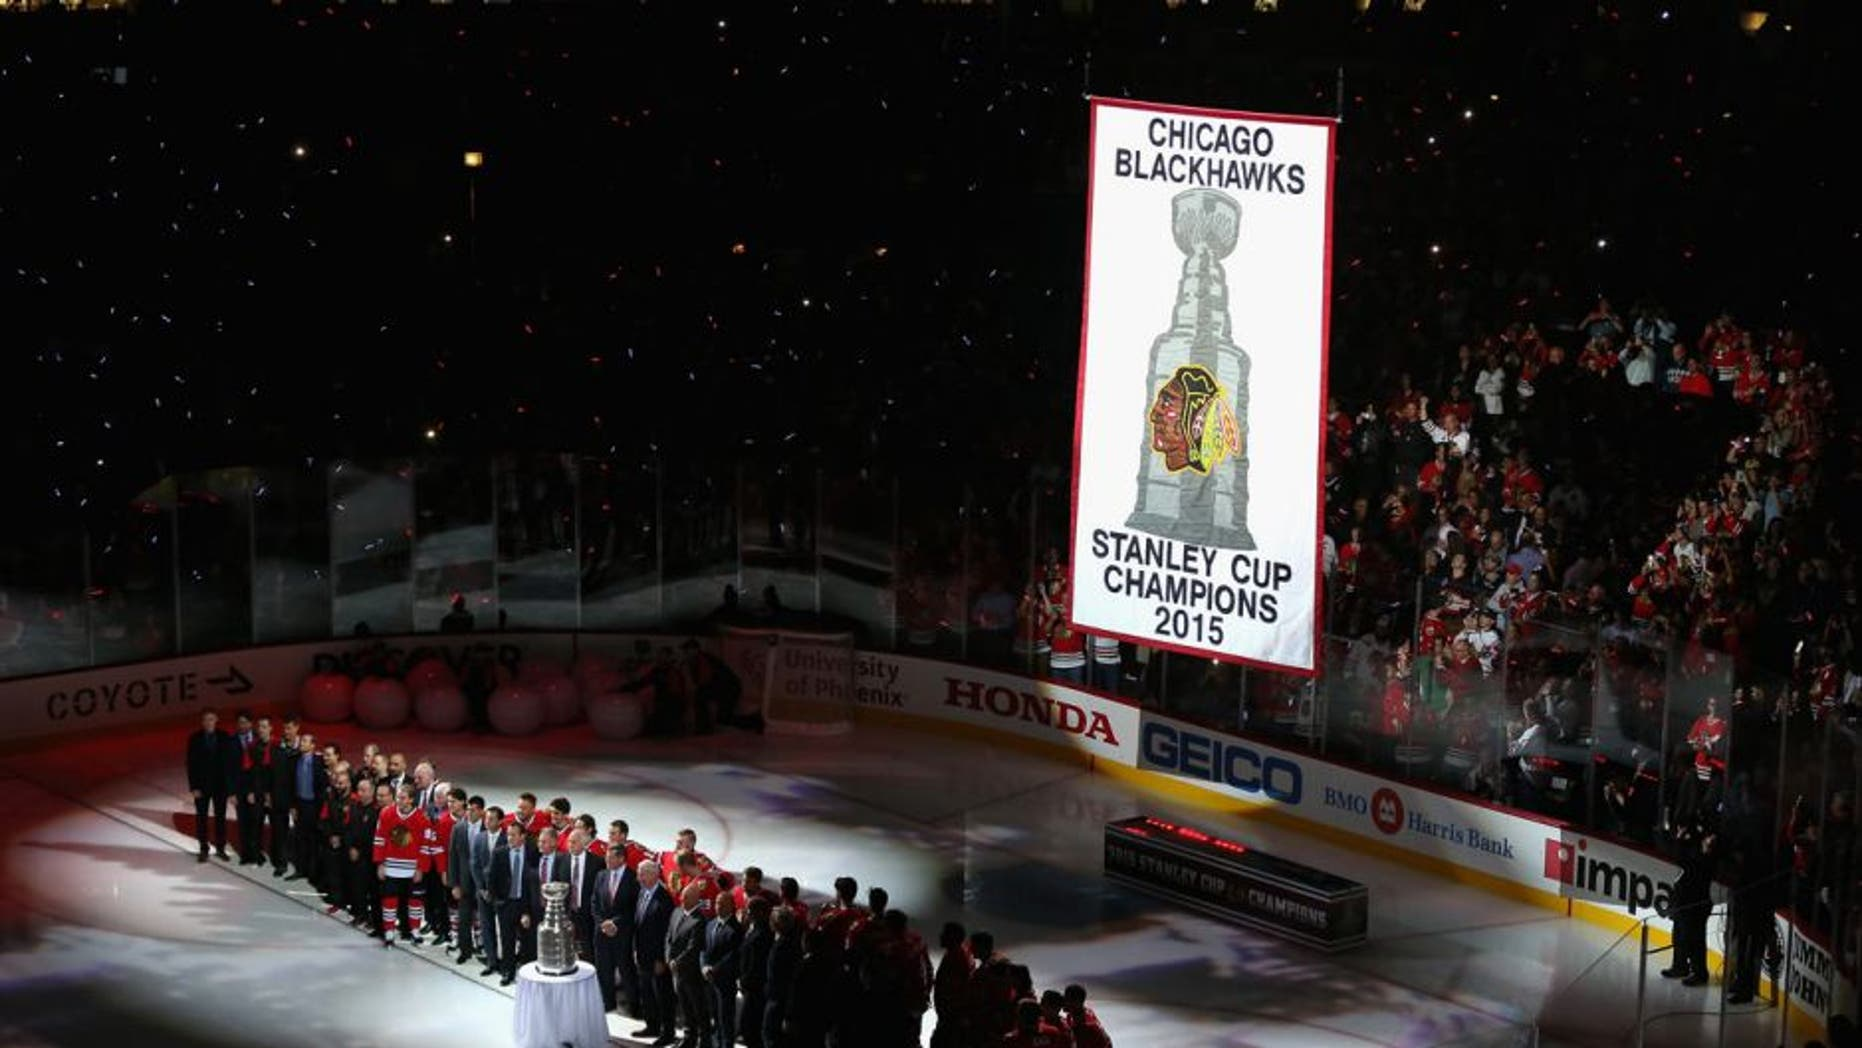 CHICAGO, IL - OCTOBER 07: The 2015 Championship banner is raised before the Chicago Blackhawks take on the New York Rangers during an NHL game at the United Center on October 7, 2015 in Chicago, Illinois. (Photo by Jonathan Daniel/Getty Images)